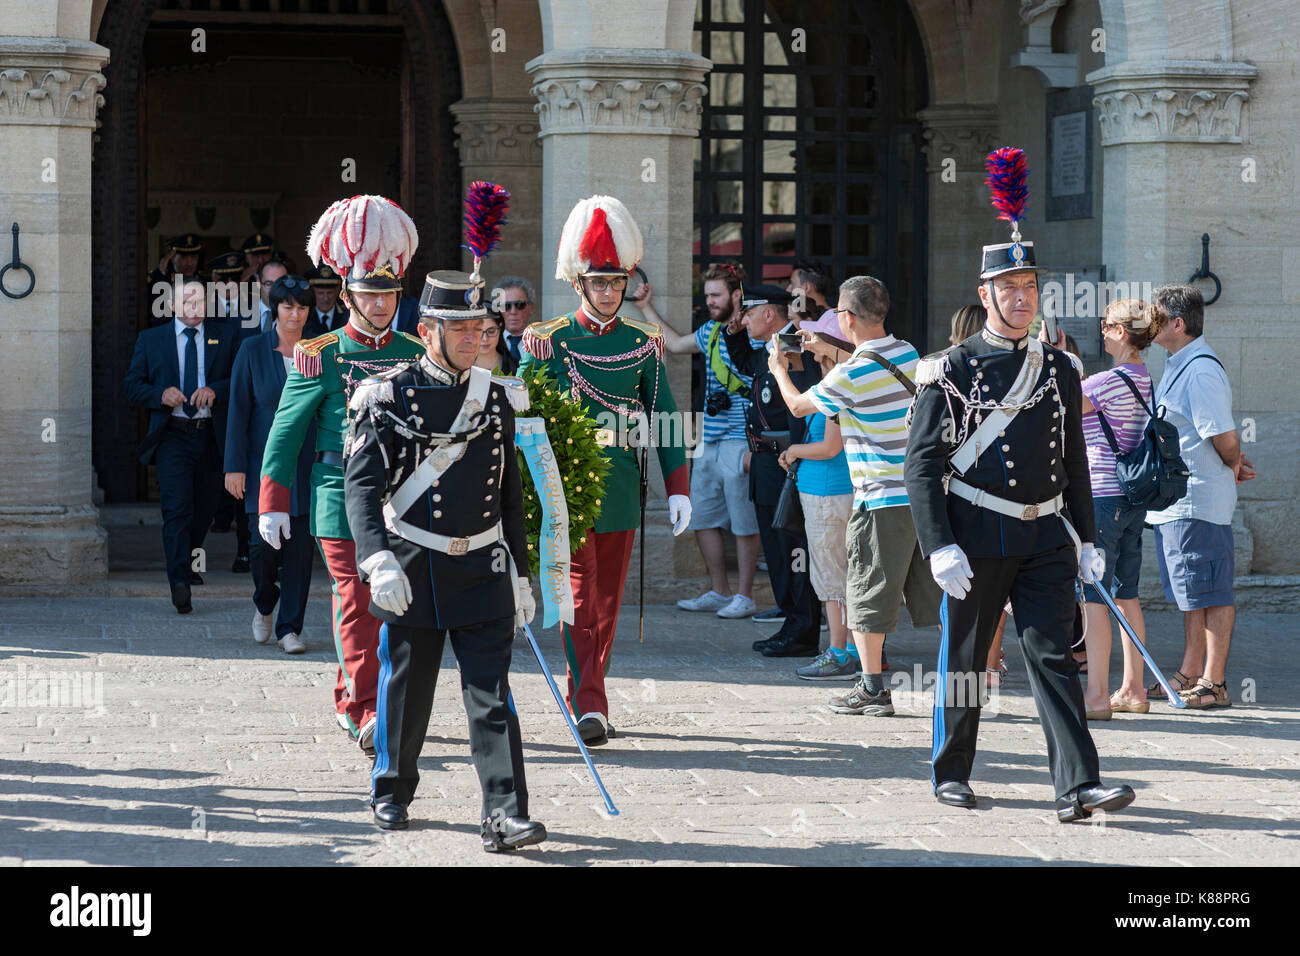 Government officials and uniformed guards outside the Palazzo Pubblico (Public Palace) in San Marino. - Stock Image